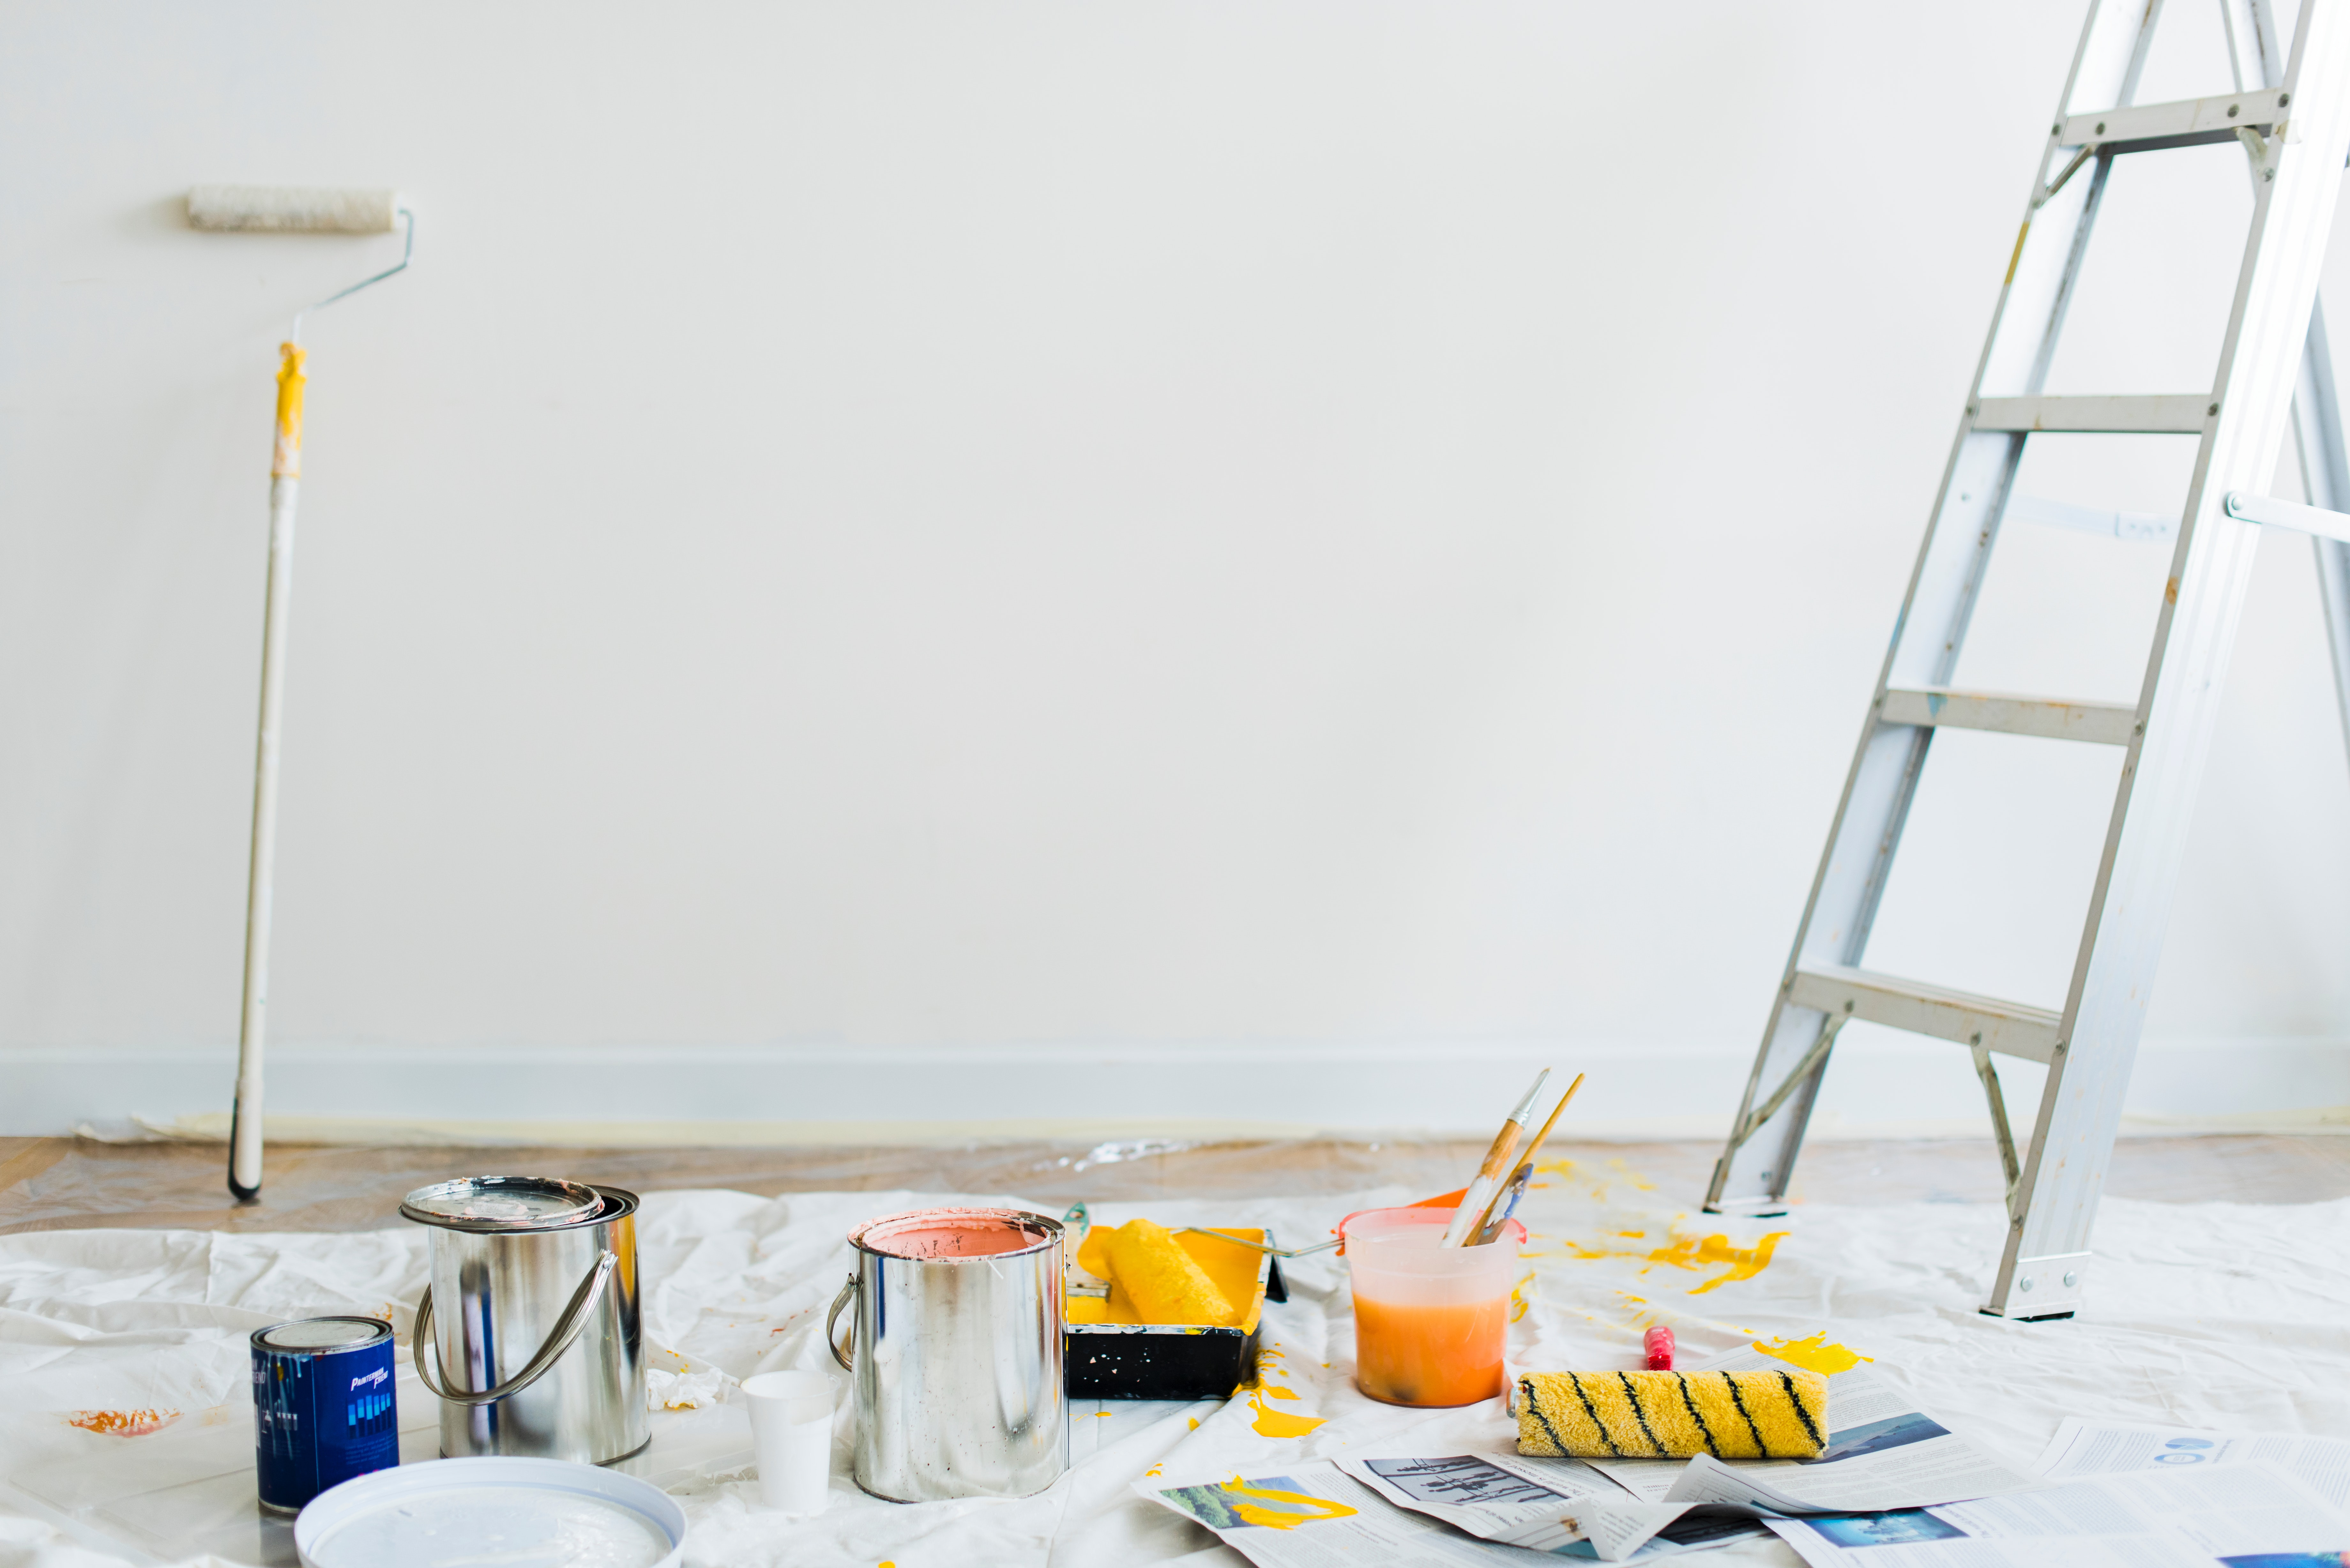 Most Popular Ways To Finance Home Improvements